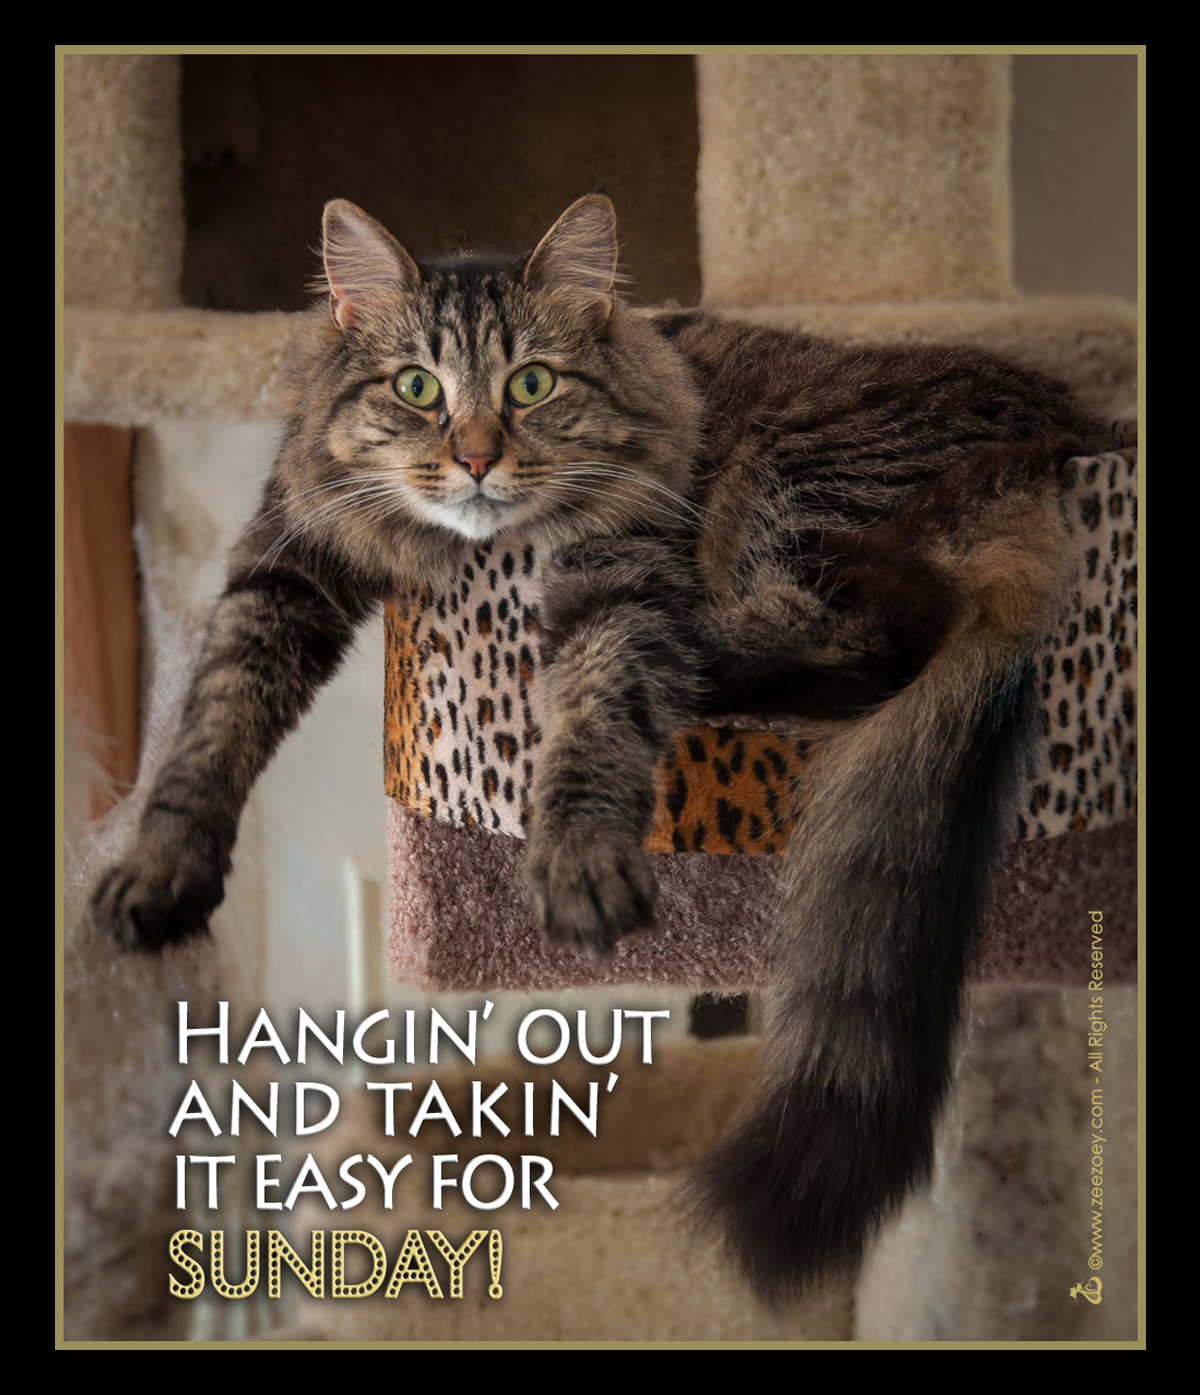 Cat: The Art Of Easy Sunday - Cat Style!